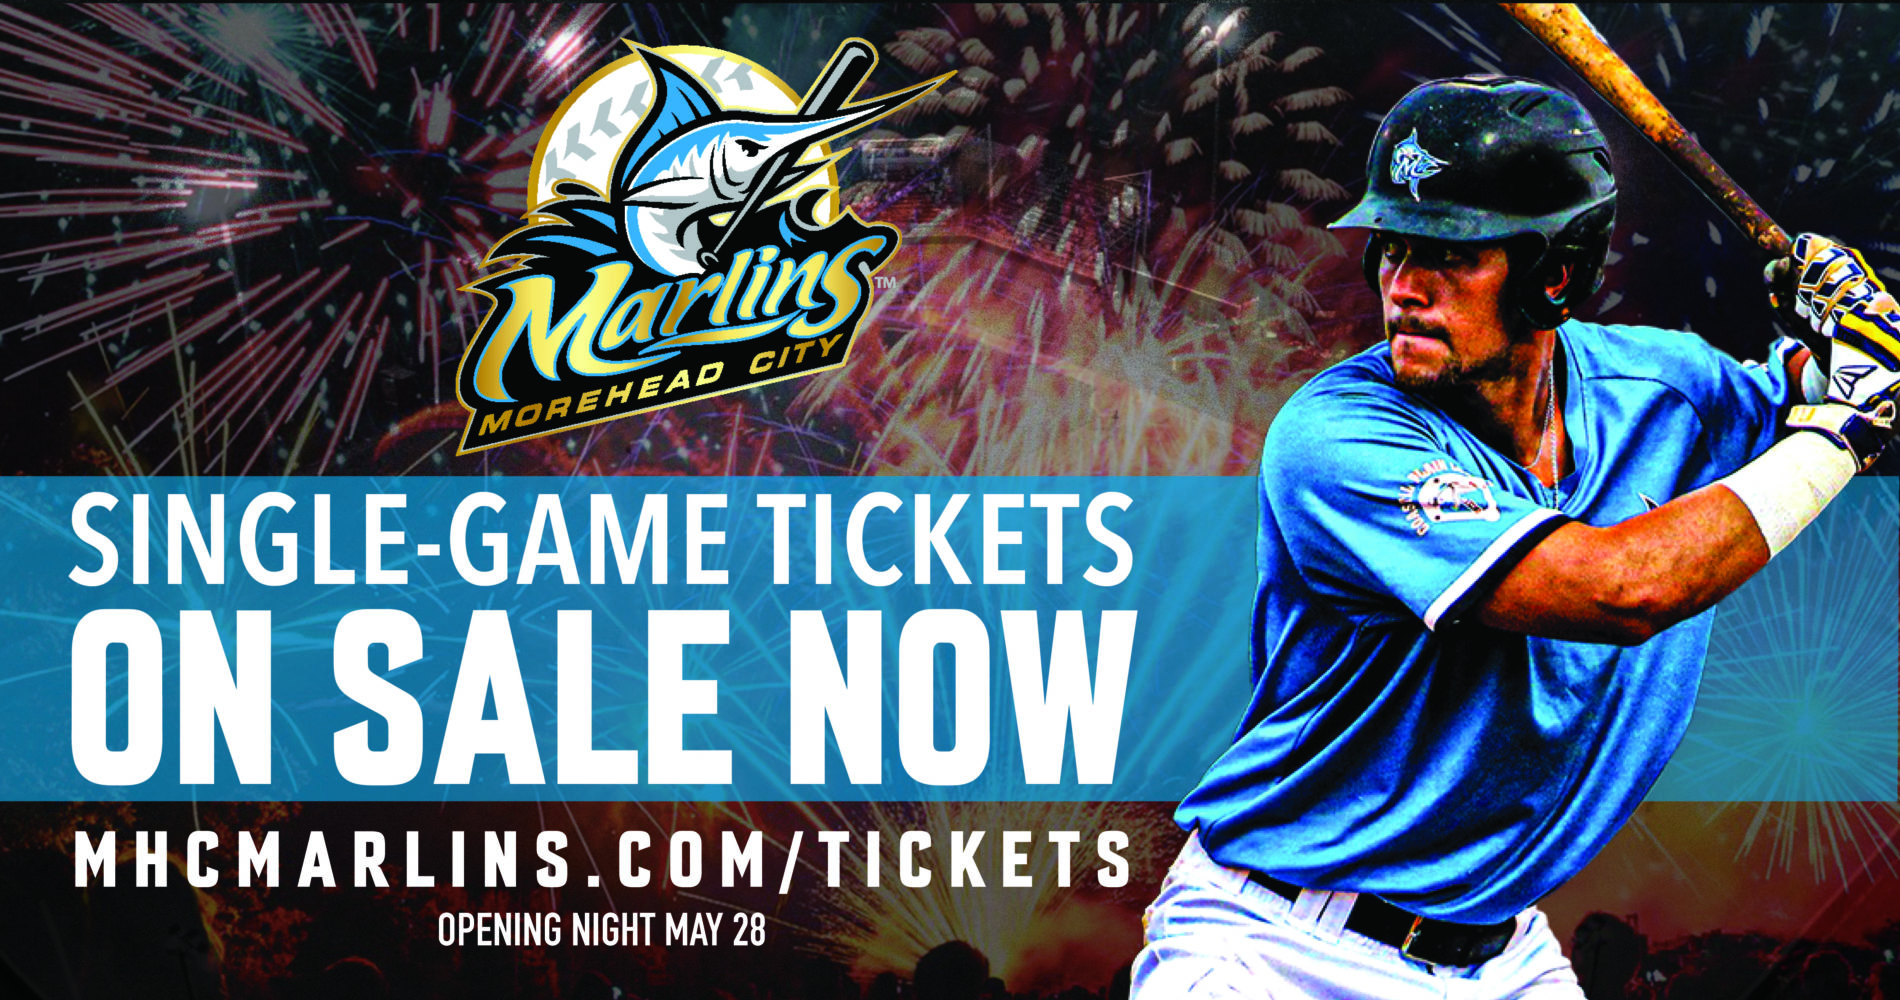 Single-game tickets now on sale!